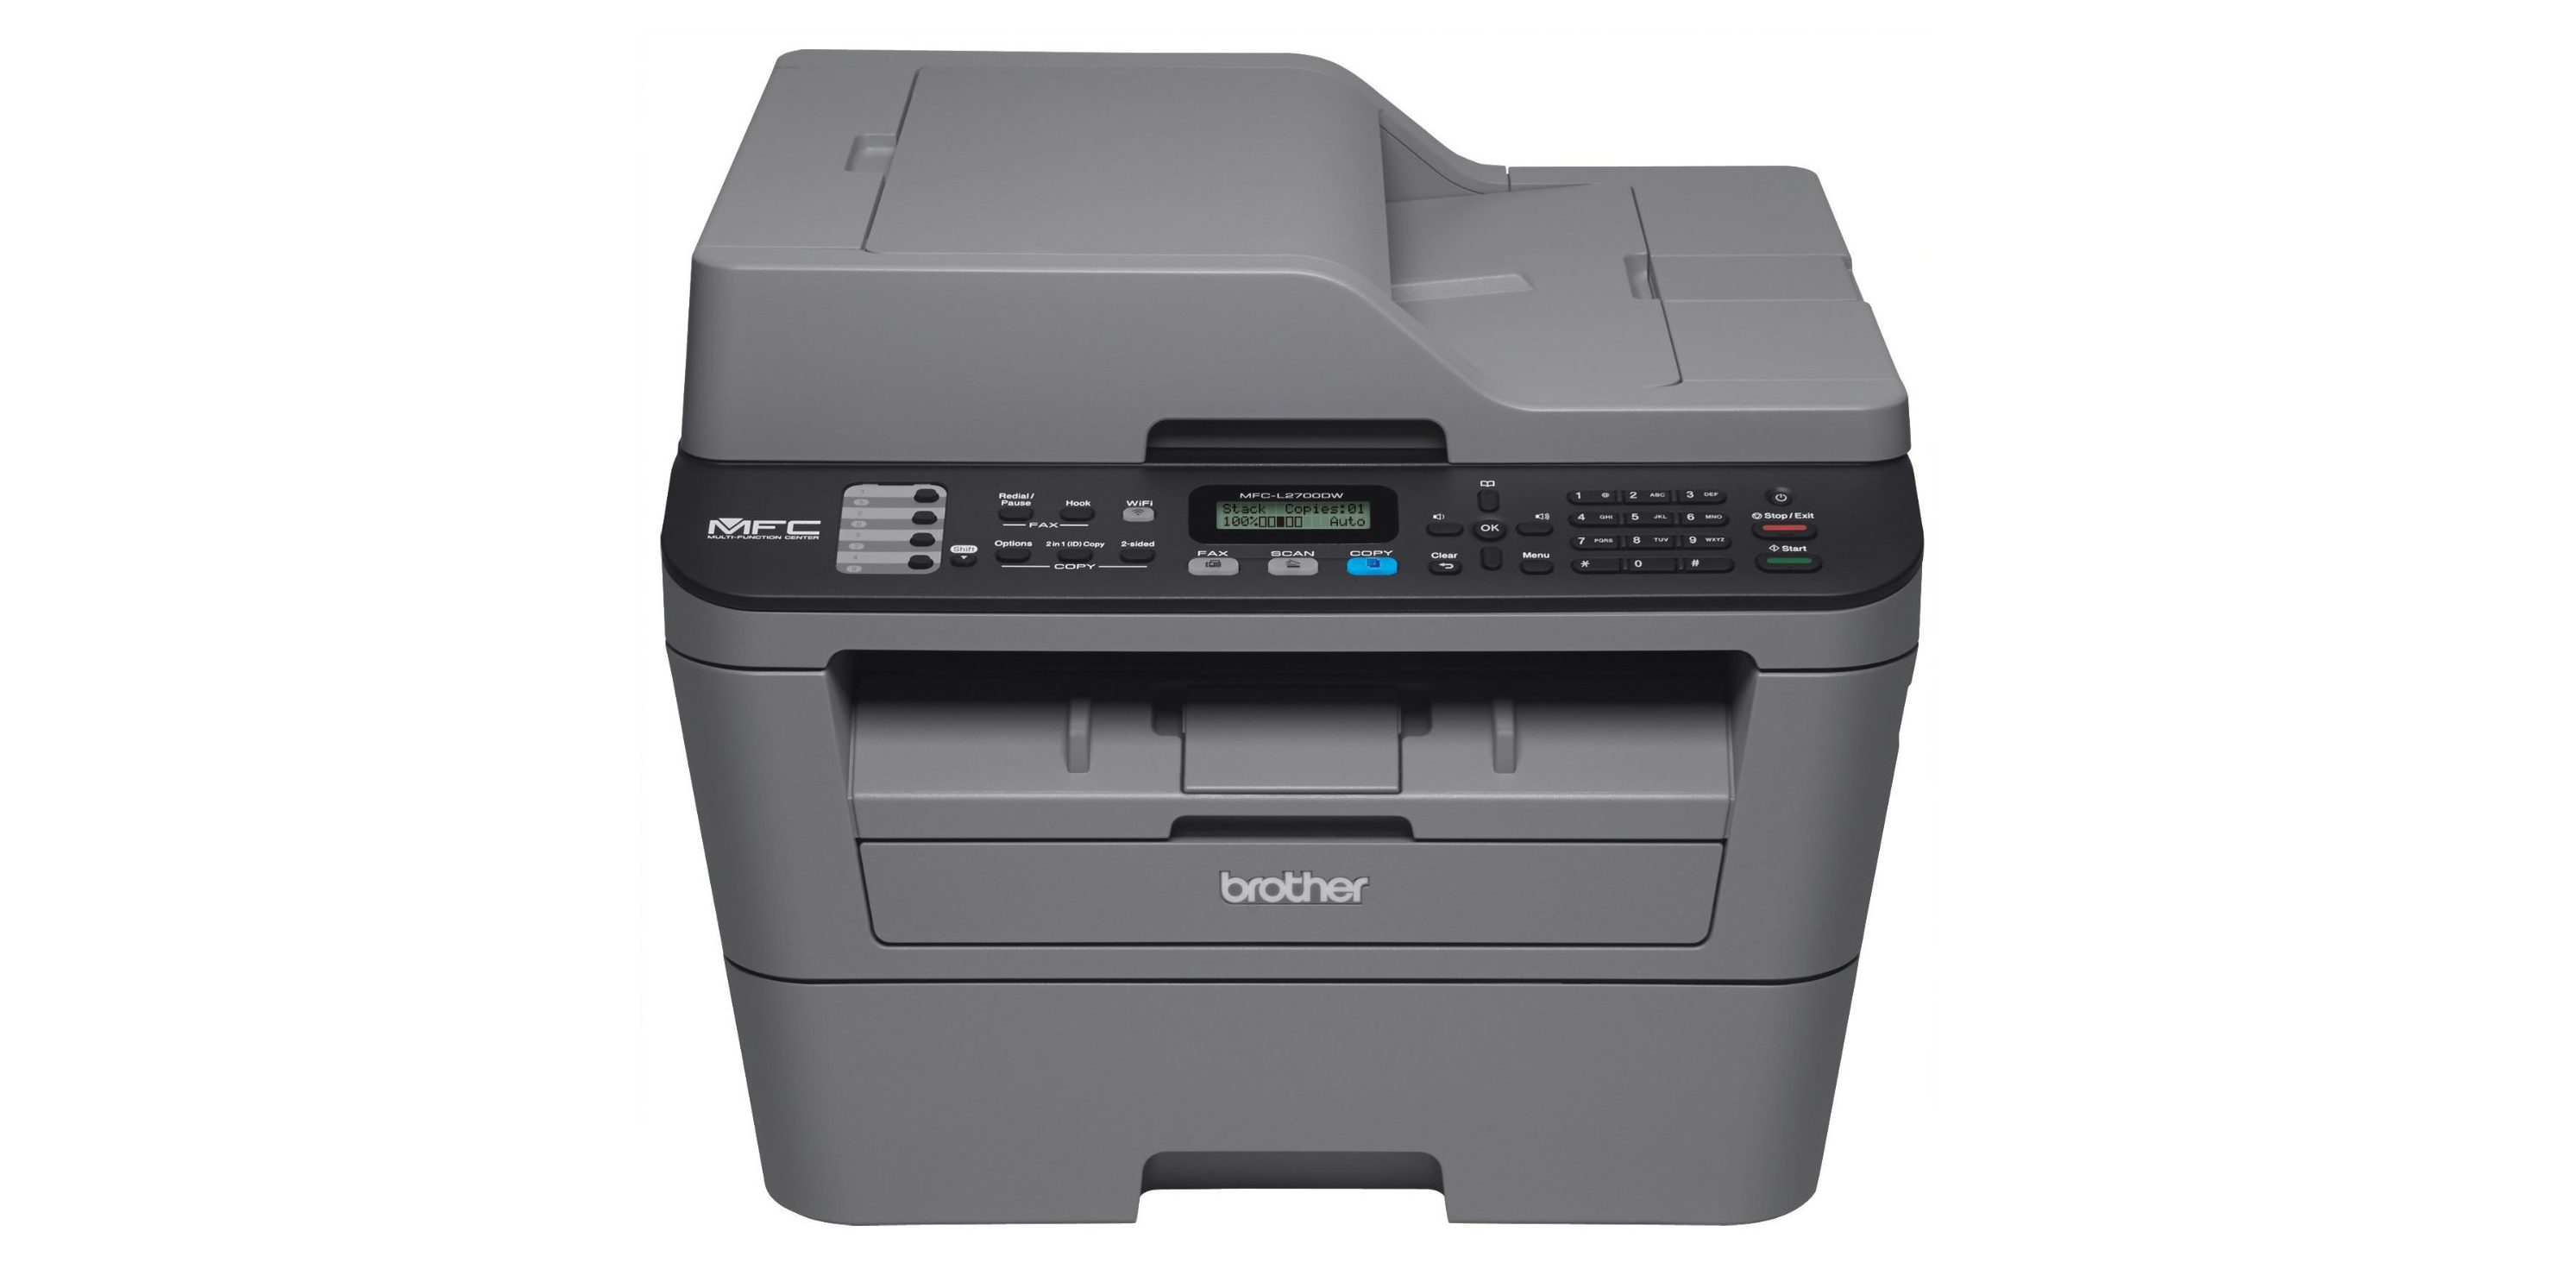 brother-mfc2700dw